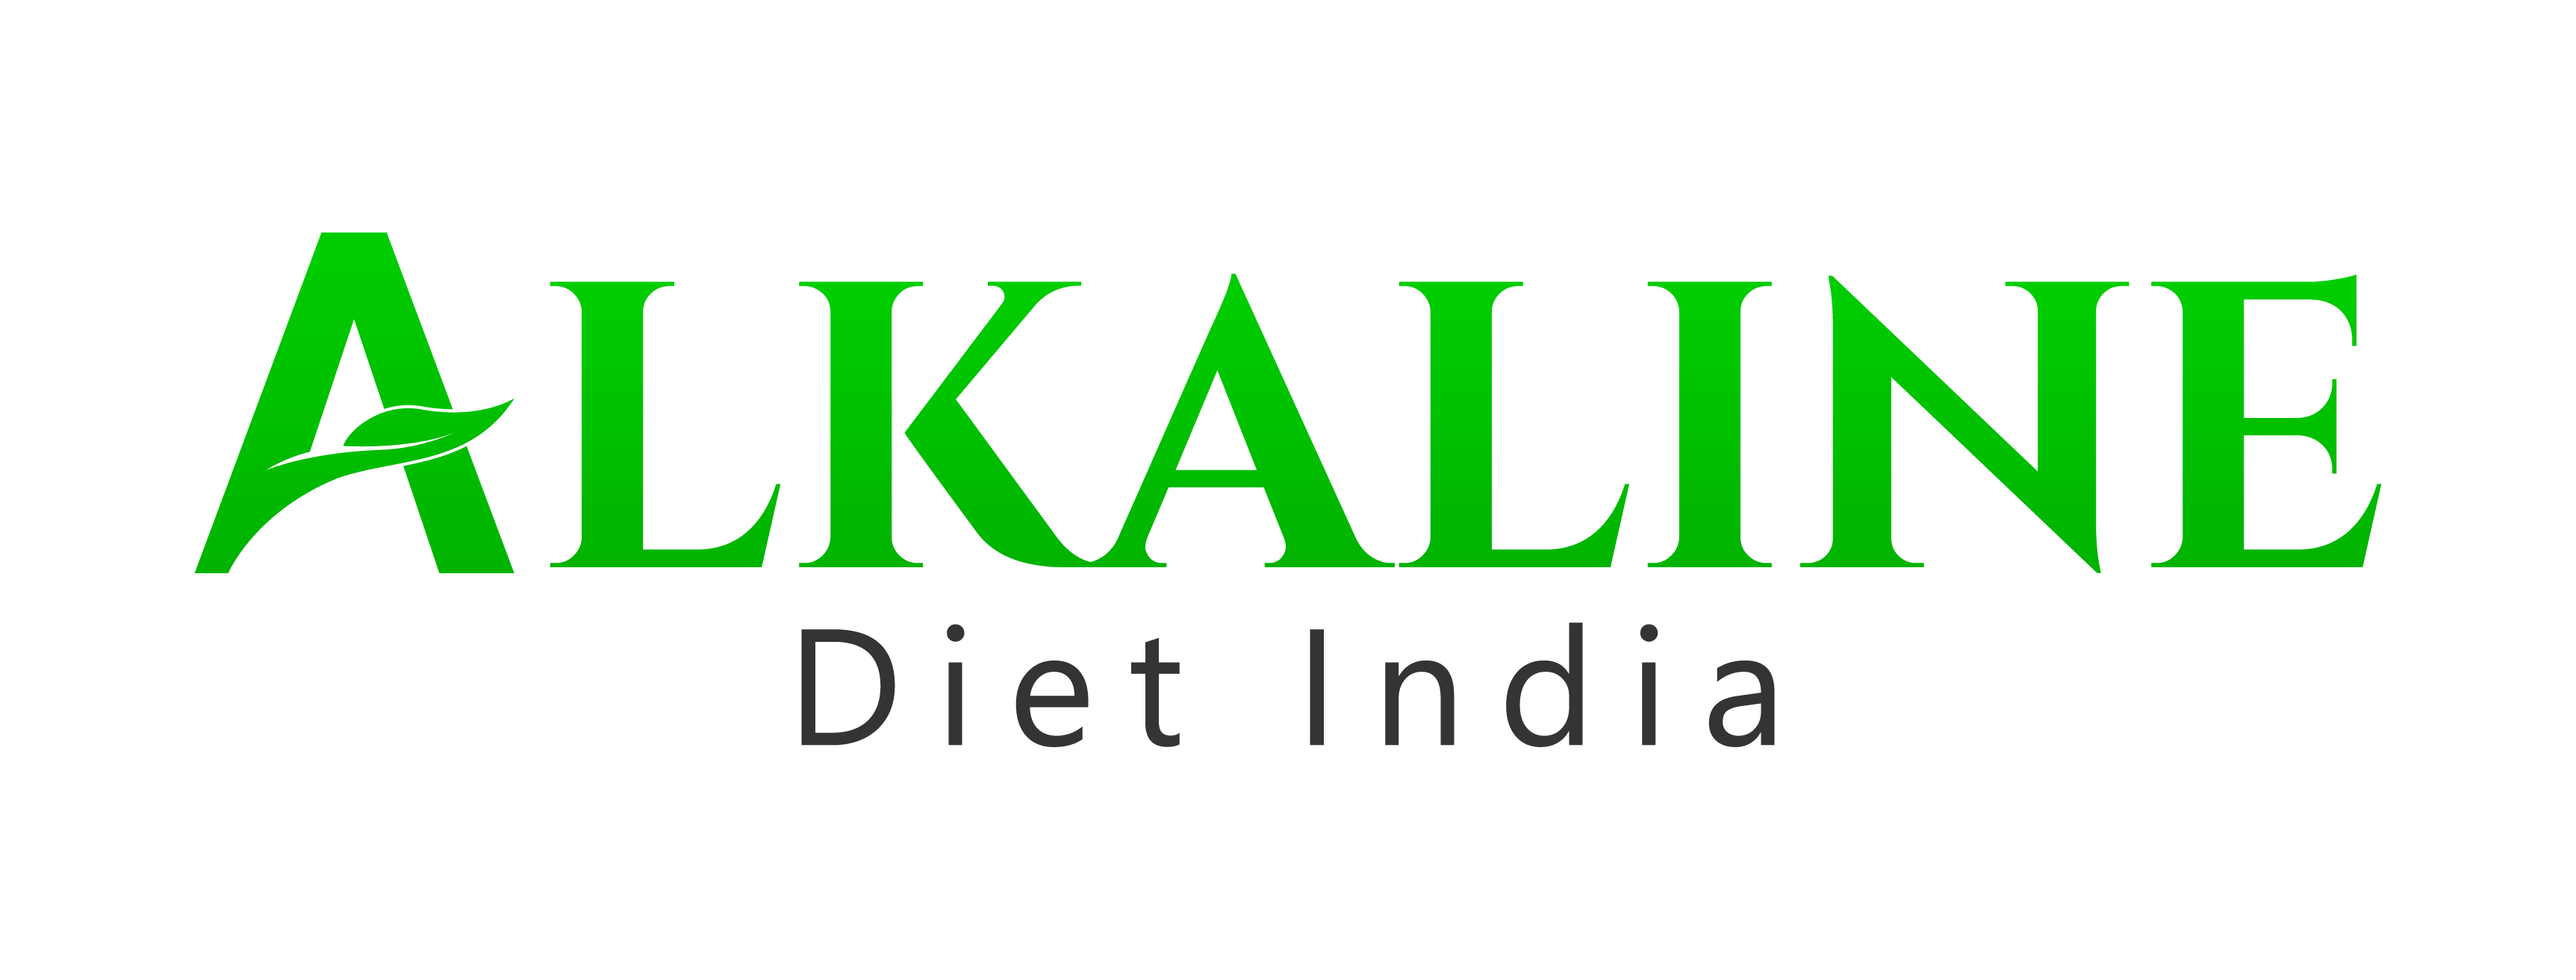 Alkaline Diet India